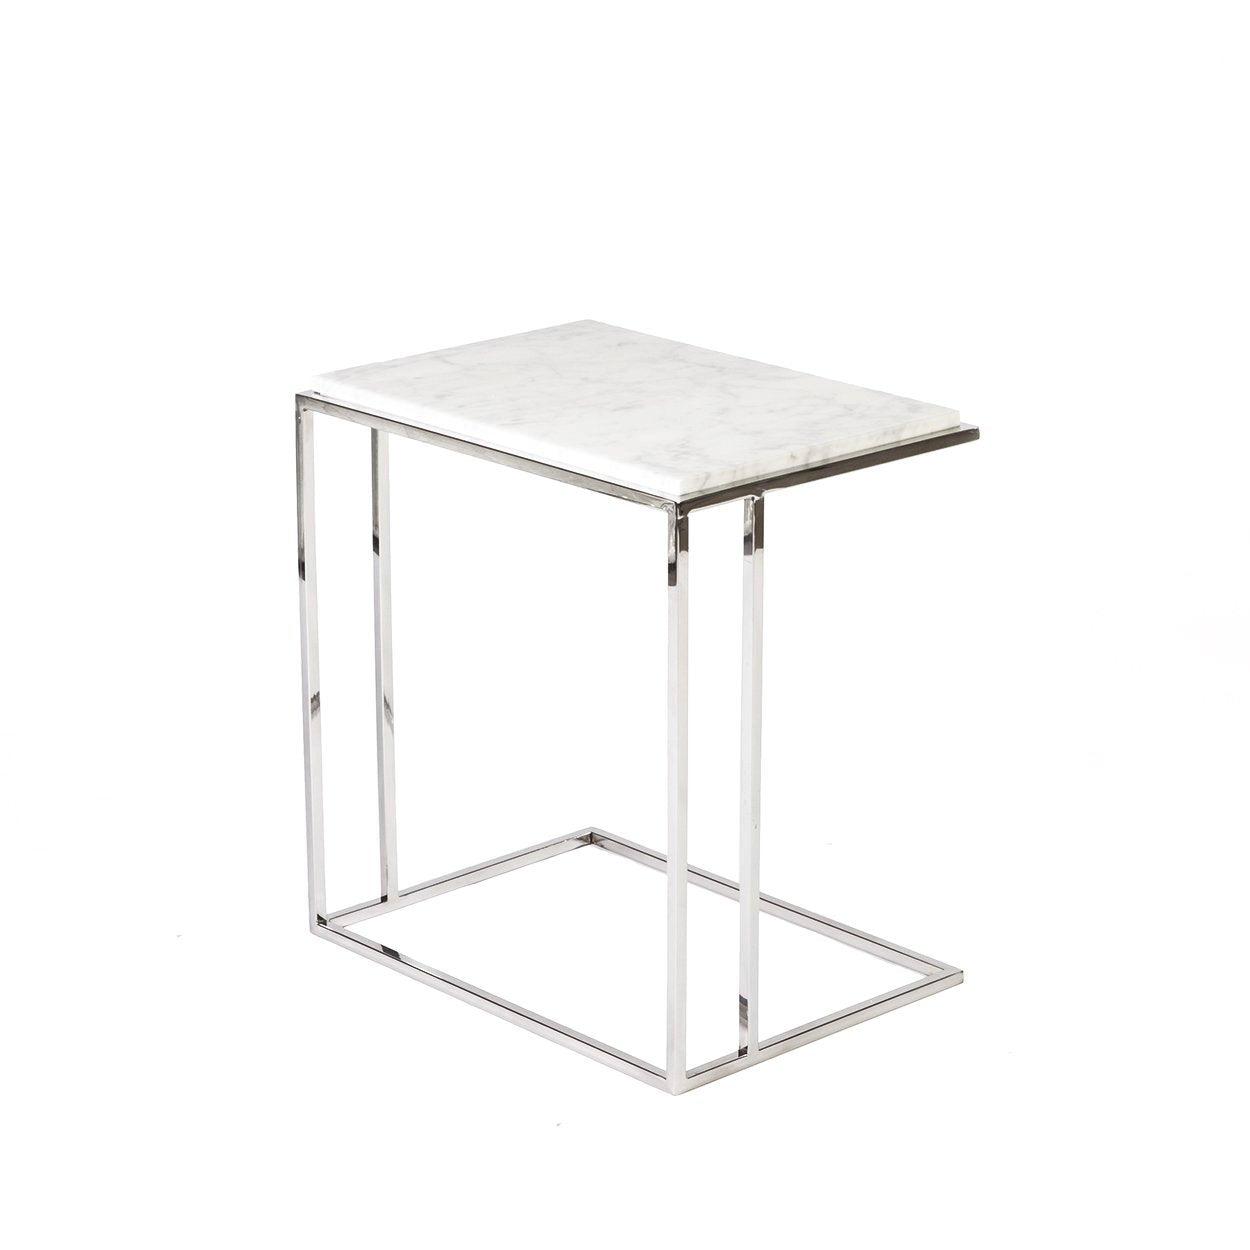 [FV521WHT] Faas End table